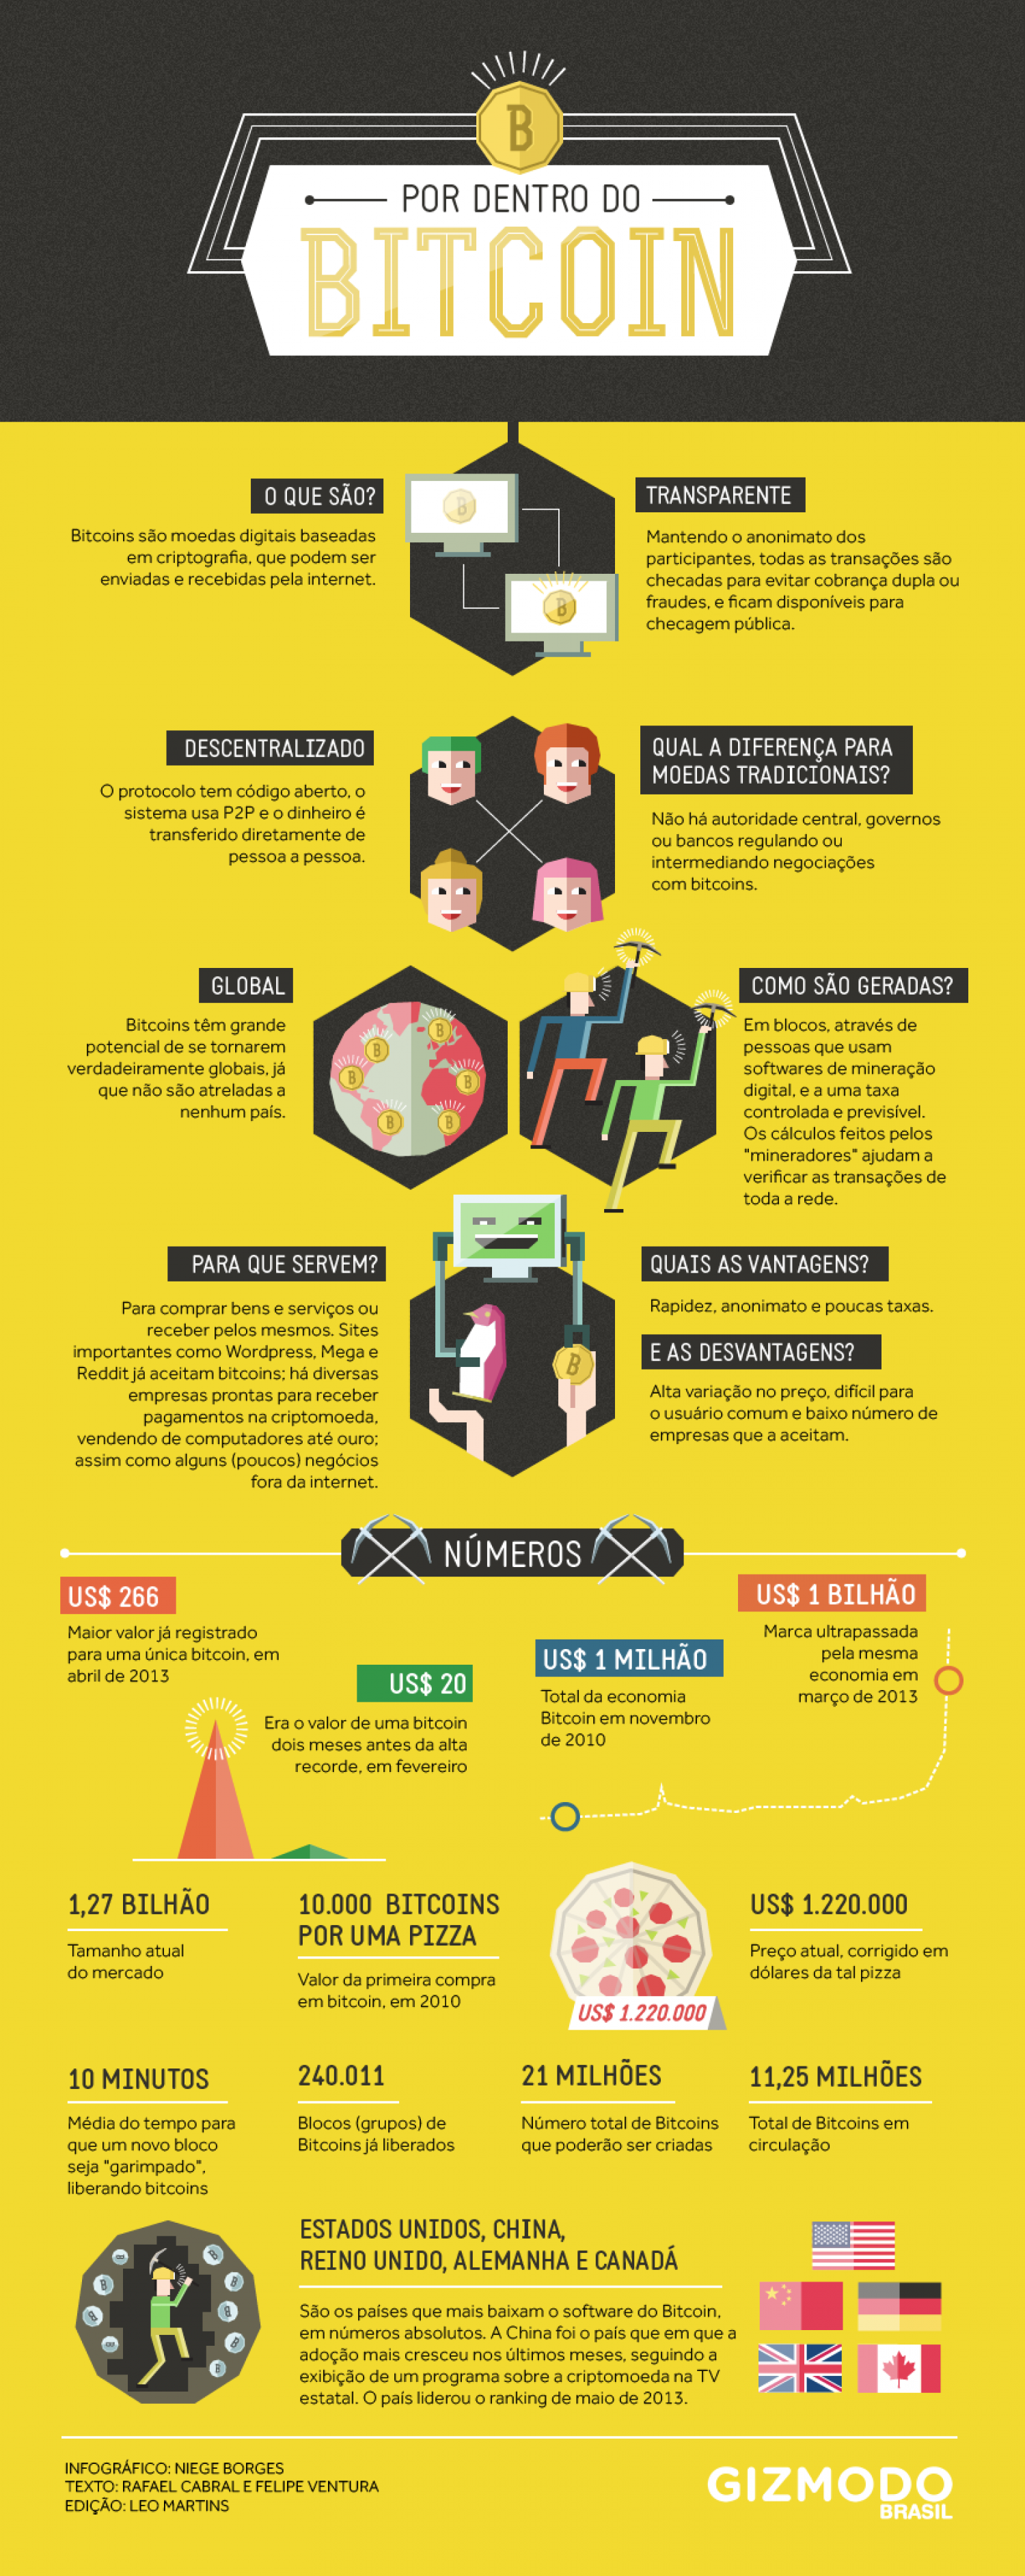 All About Bitcoin Infographic